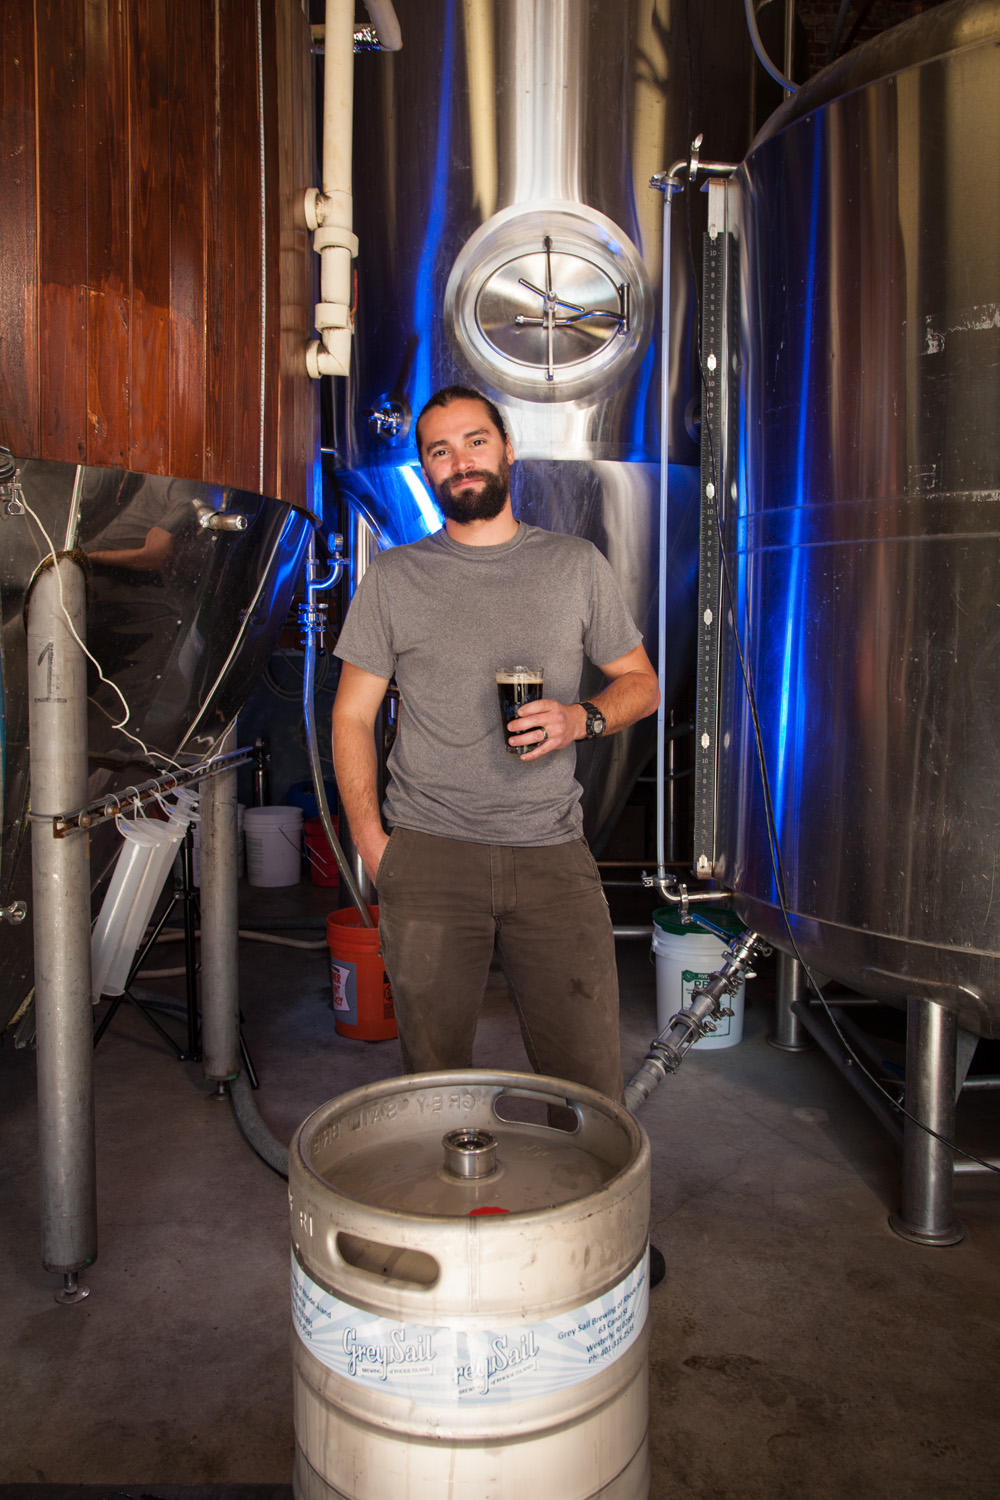 Josh Latourneau, Head Brewer at Grey Sail Brewing Co. Westerly, RI Established in 2011